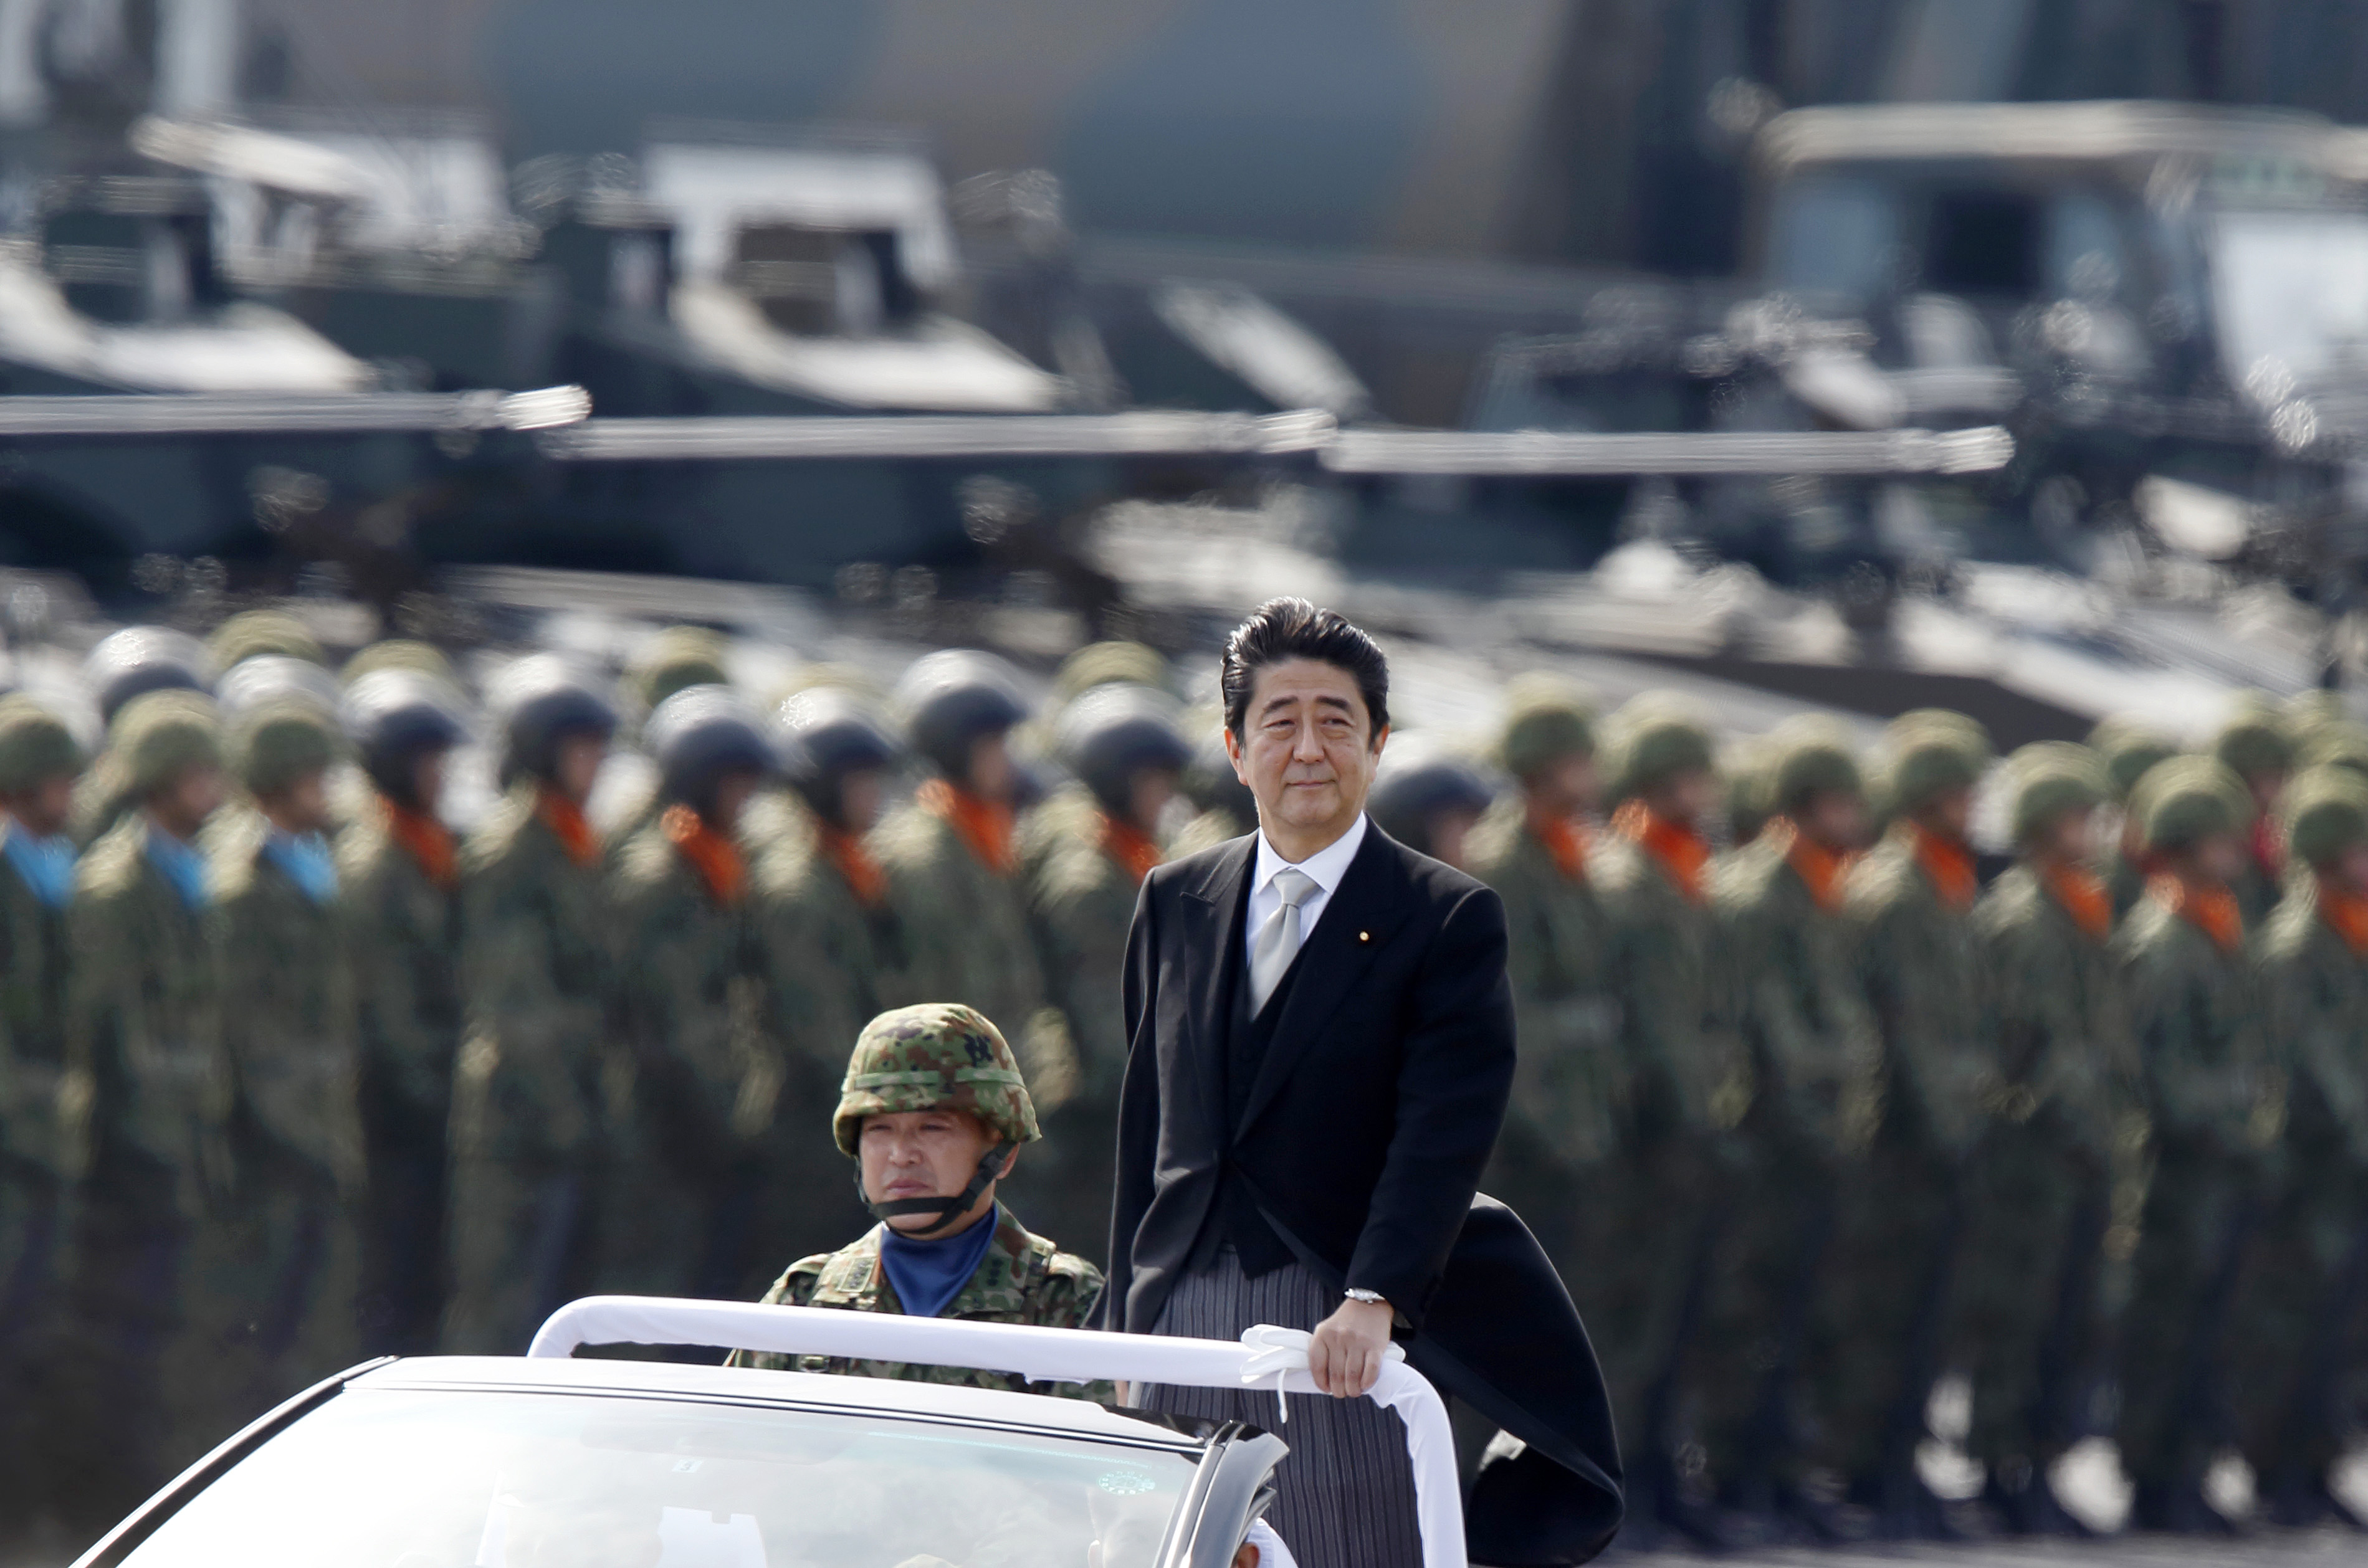 Japanese Prime Minister Shinzo Abe at the Japan Ground Self-Defense Force Camp in Asaka, Japan, on Oct. 23, 2016.